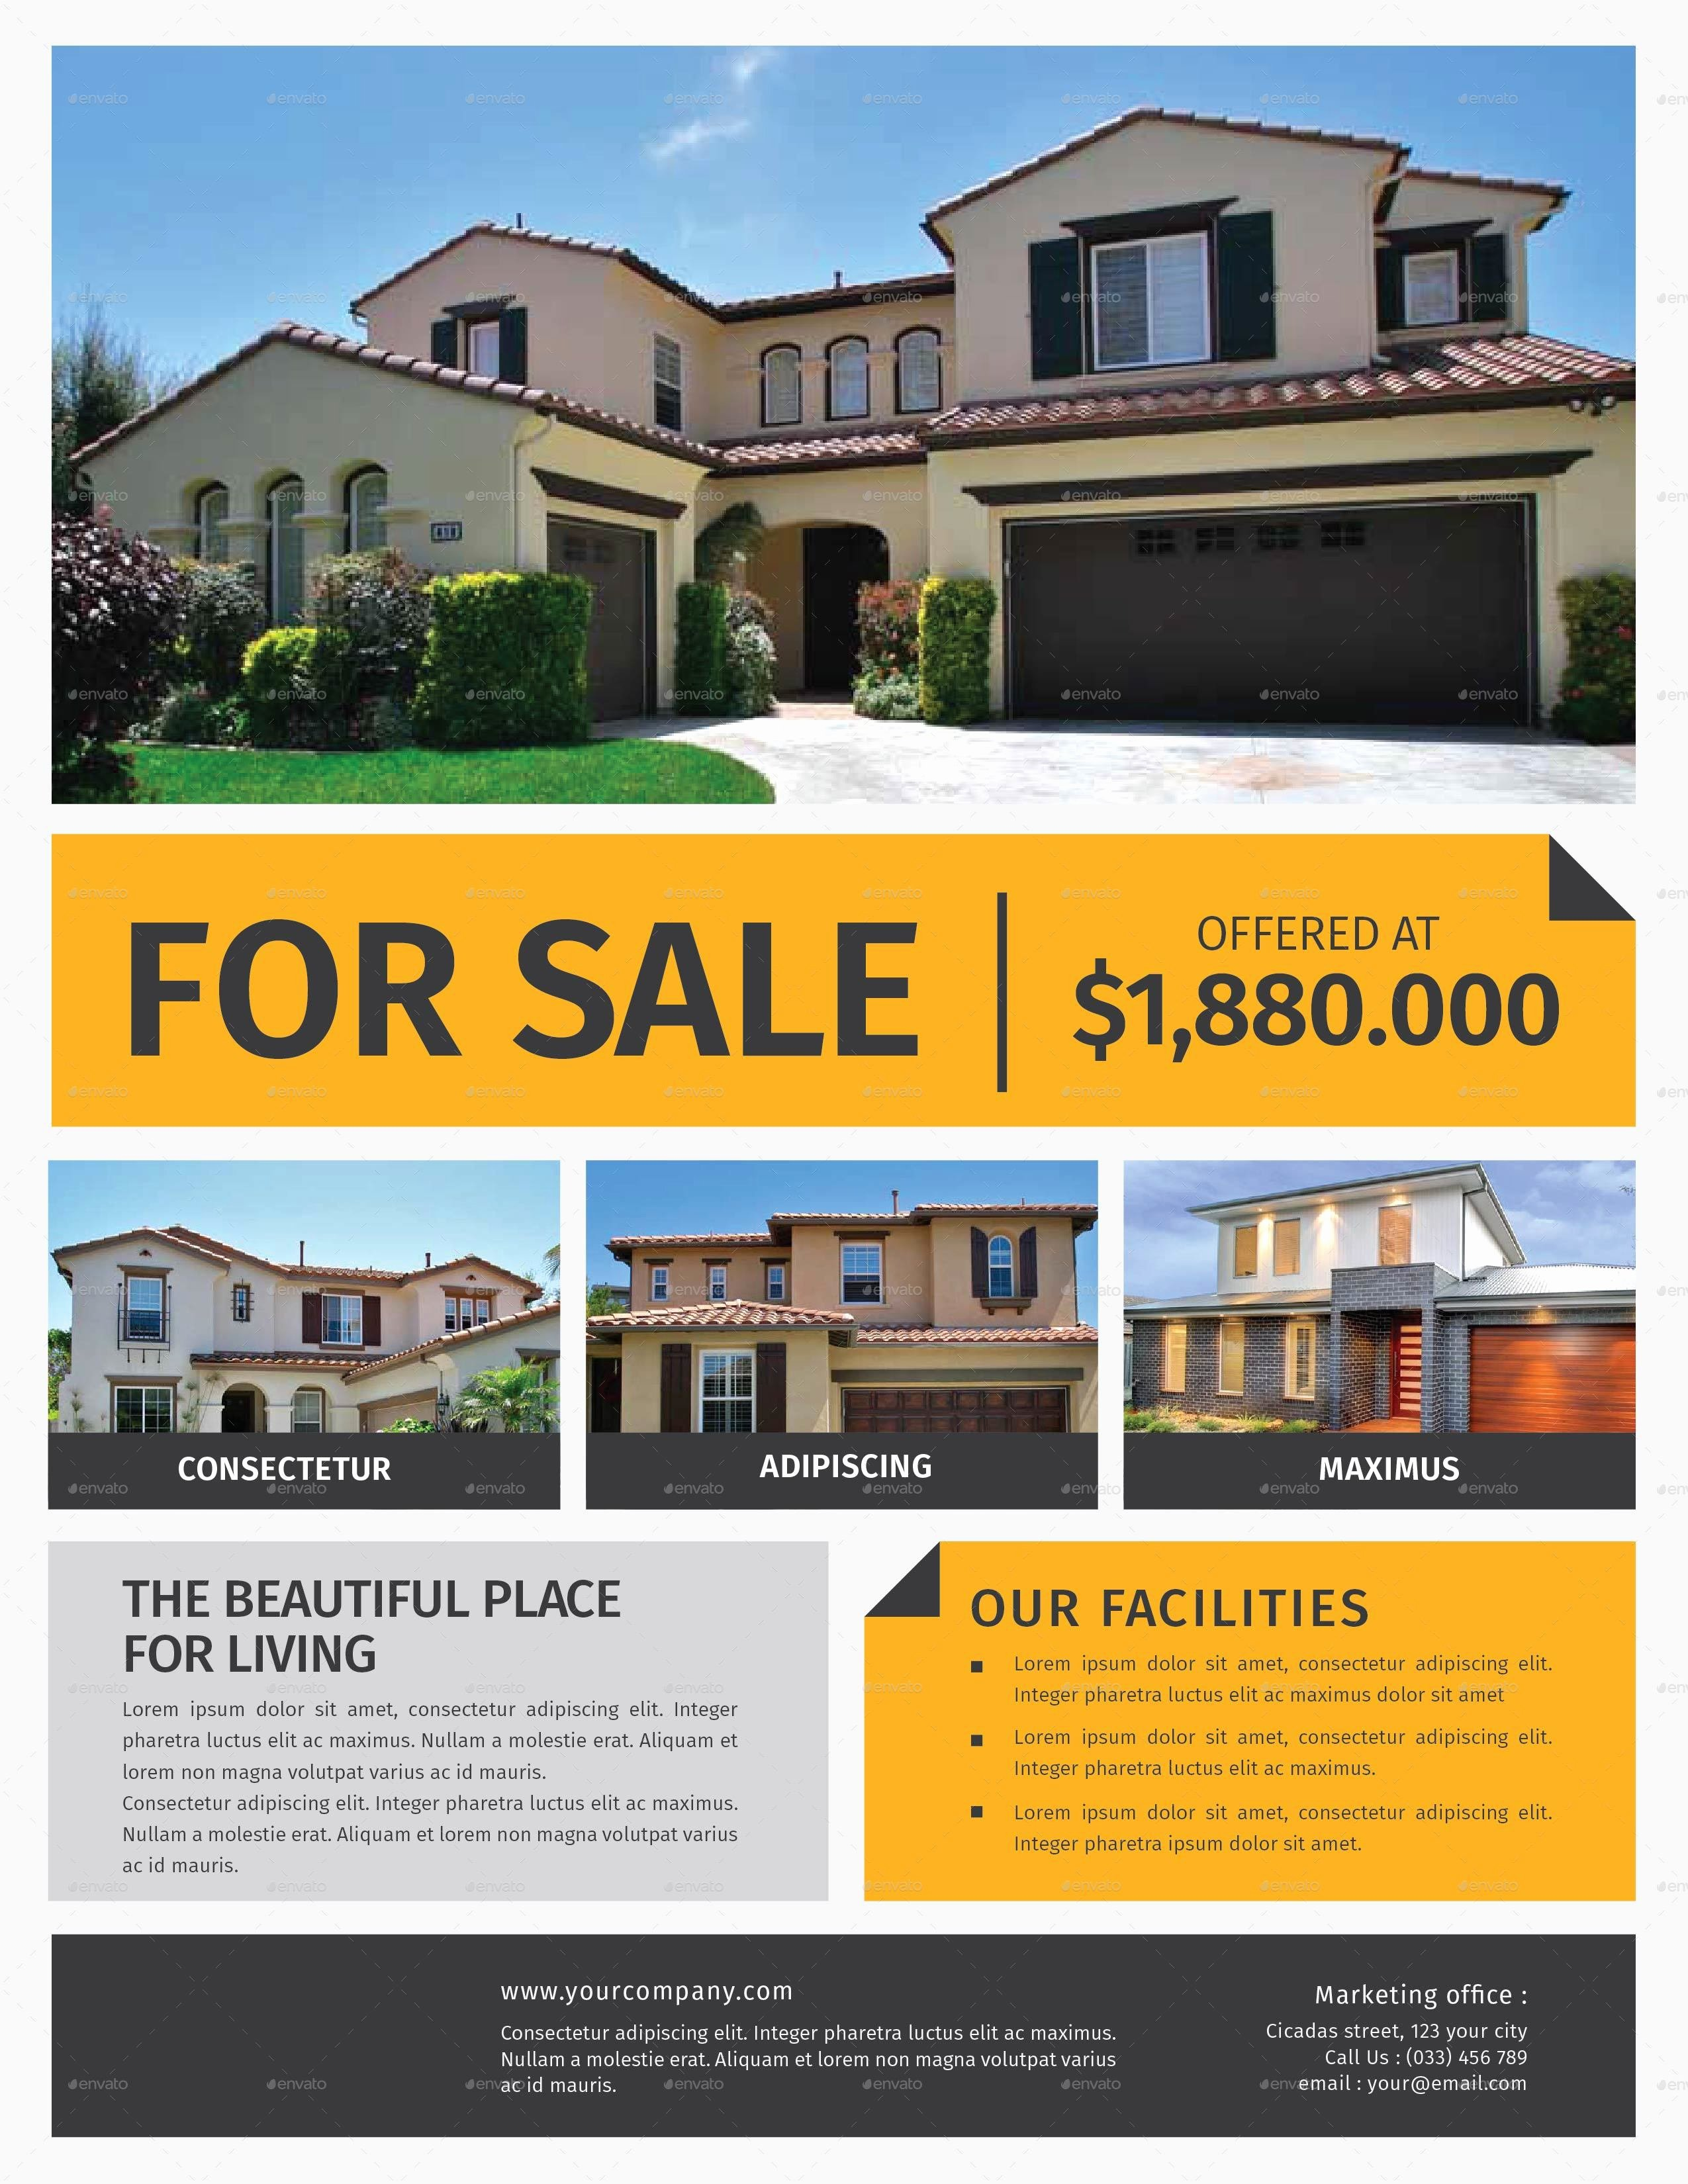 Home for Sale Flyer Best Of Real Estate Flyer by Lilynthesweetpea